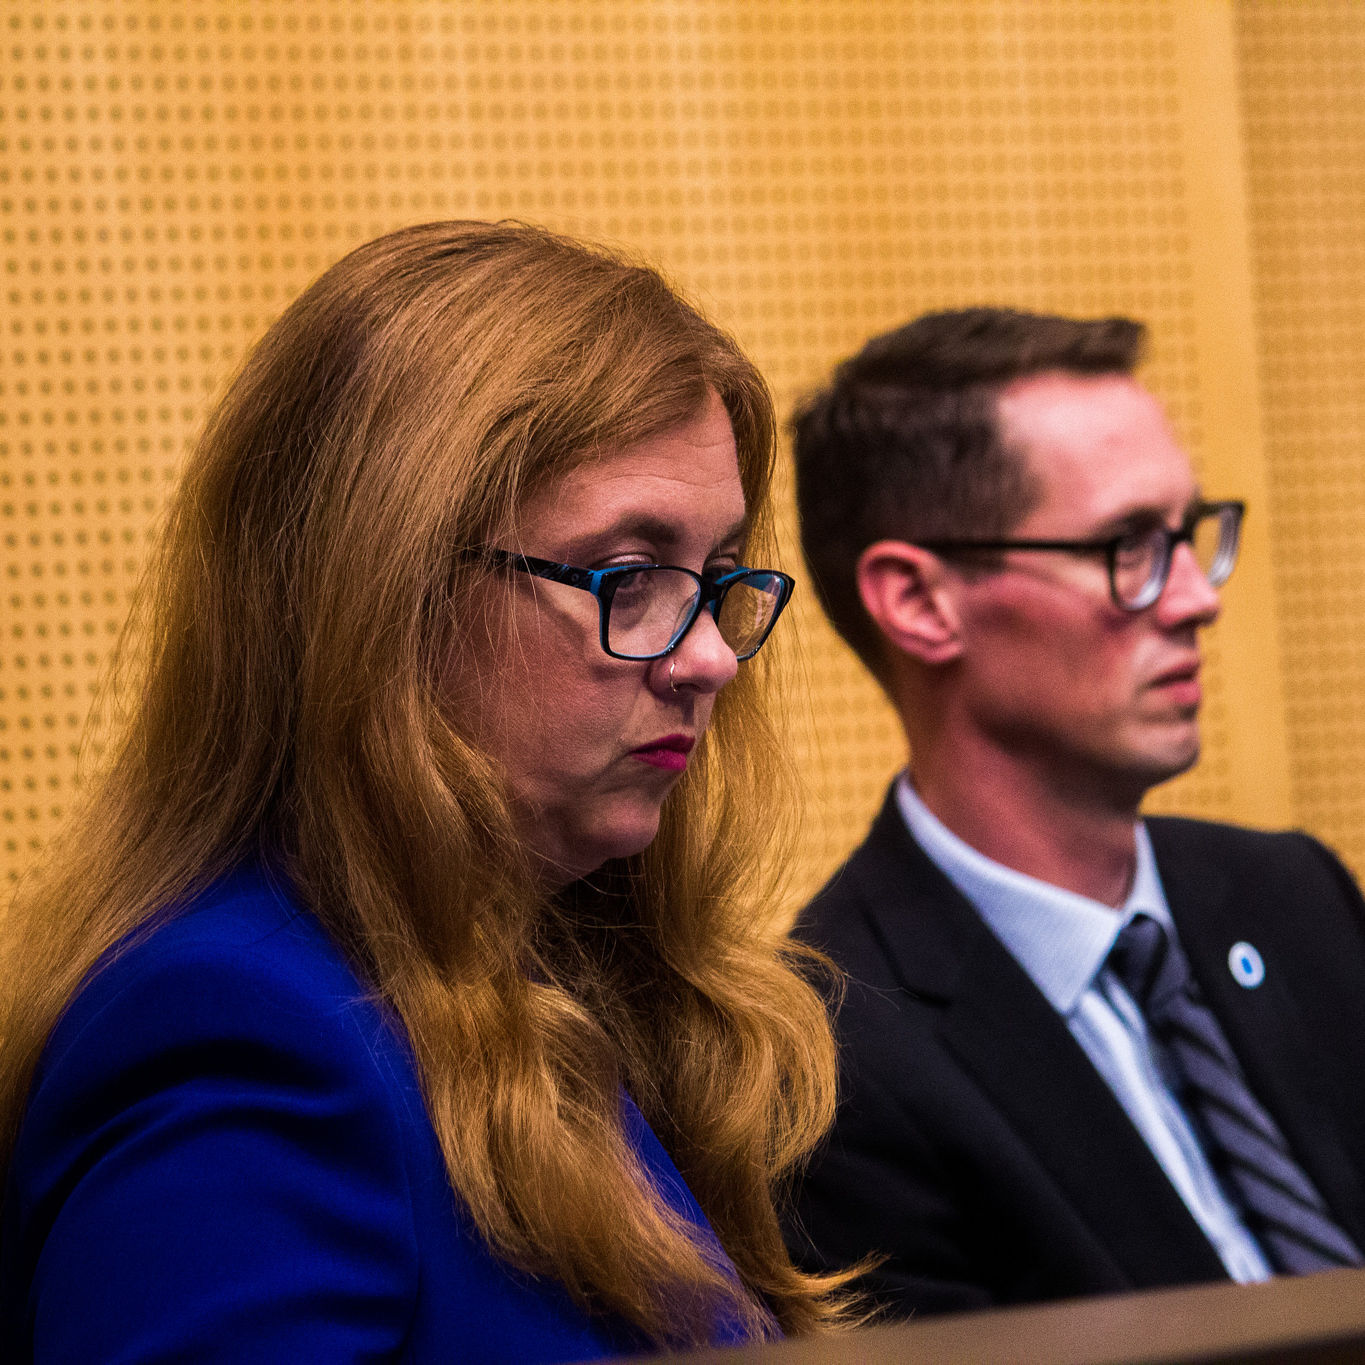 Lisa herbold budget committee rob johnson city council hgctzf